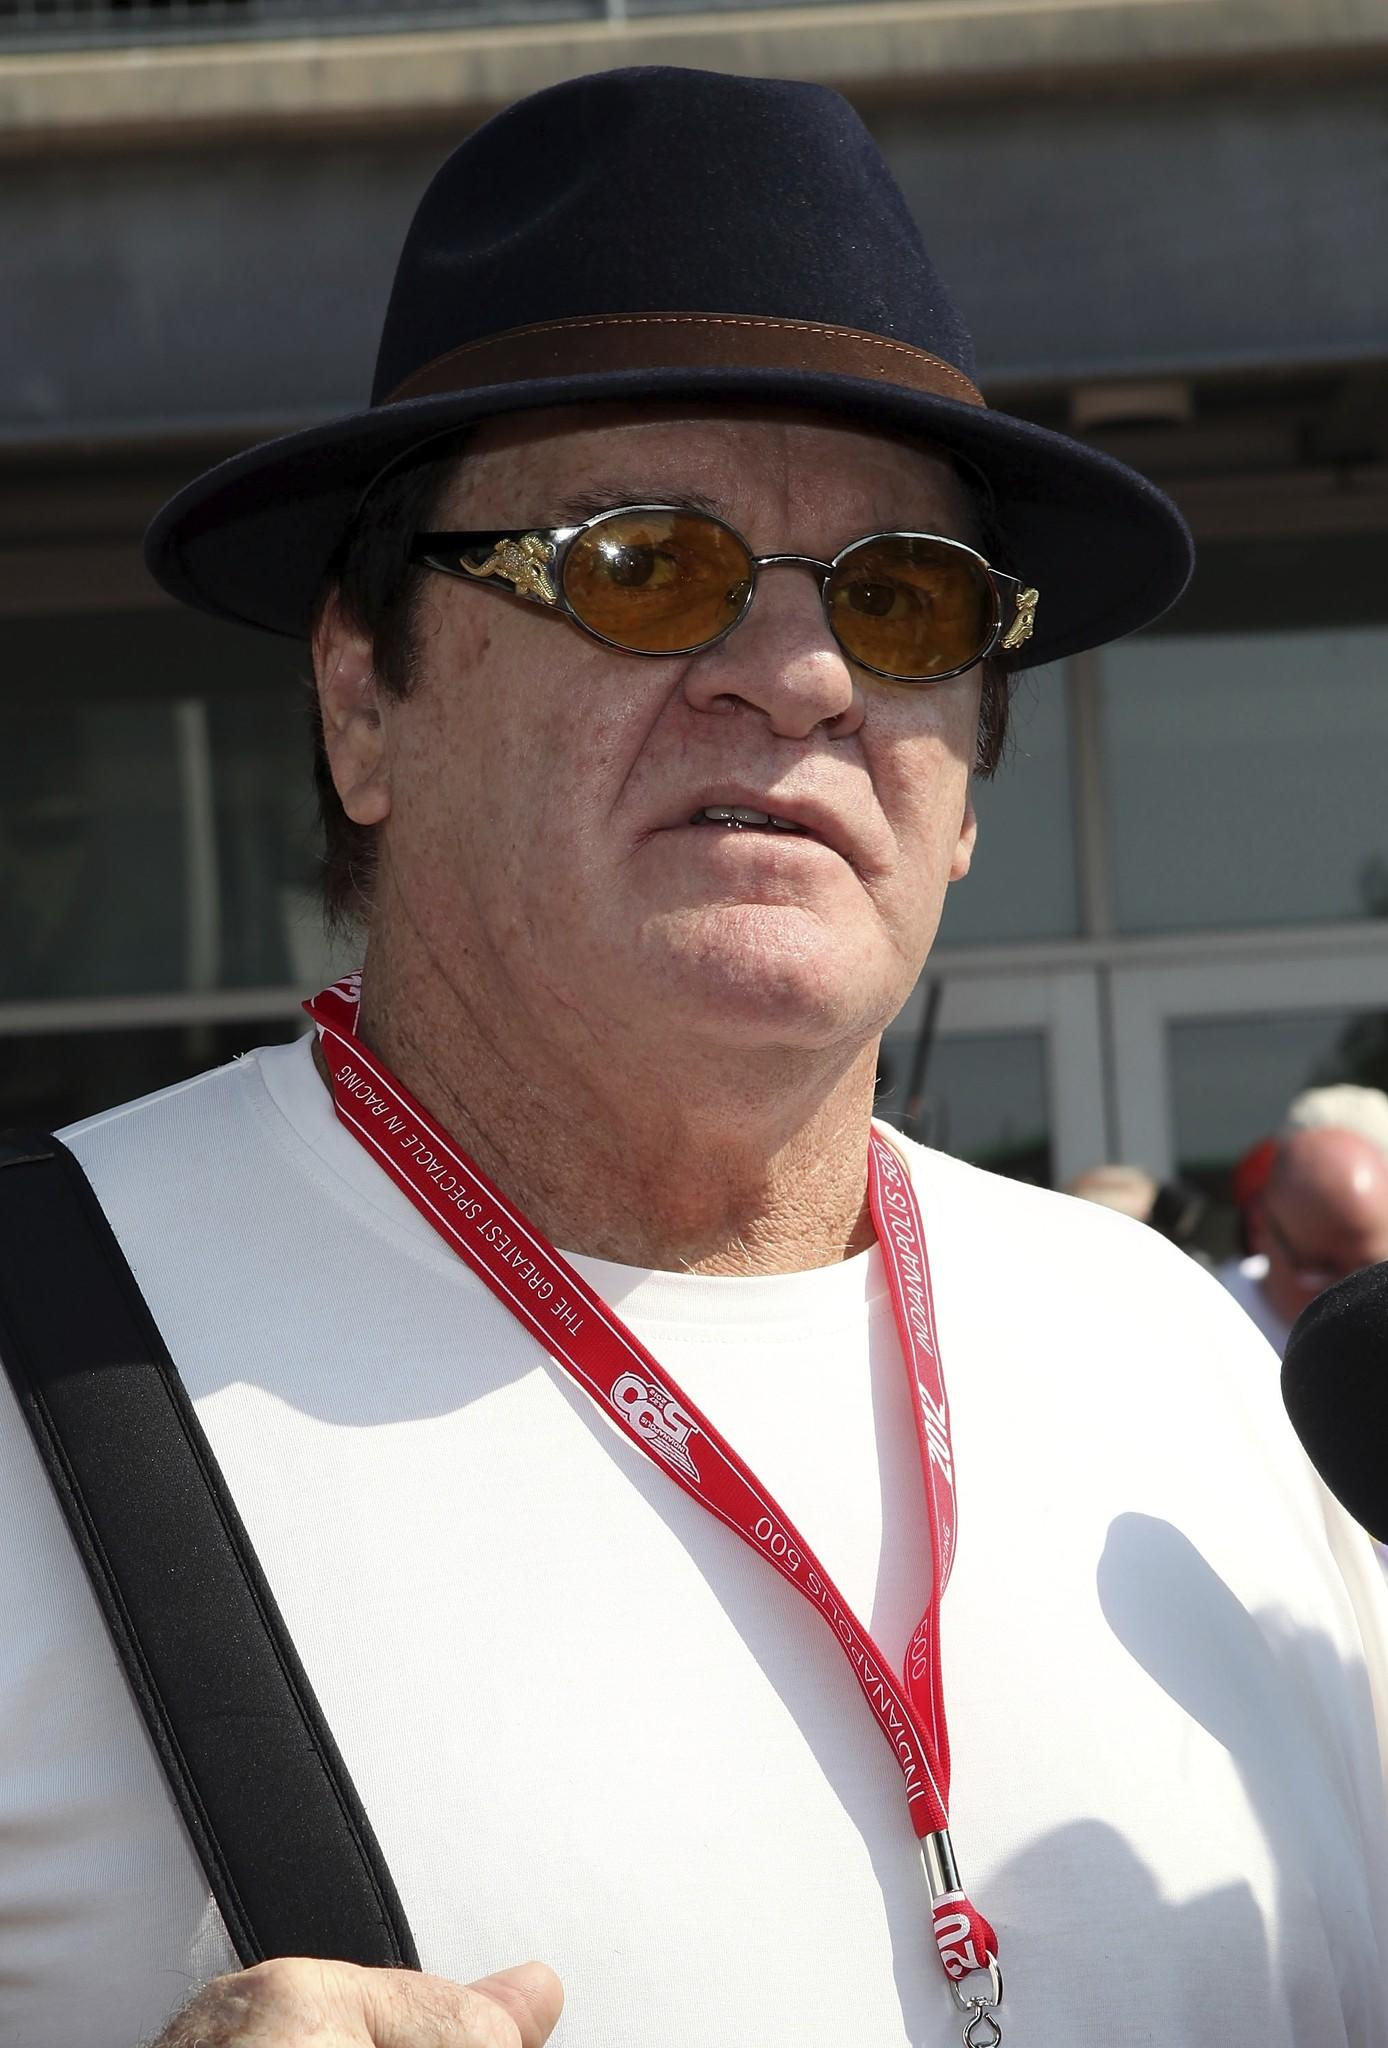 Pete Rose attends the 2012 Indianapolis 500 at Indianapolis Motorspeedway on May 27, 2012 in Indianapolis, Indiana.